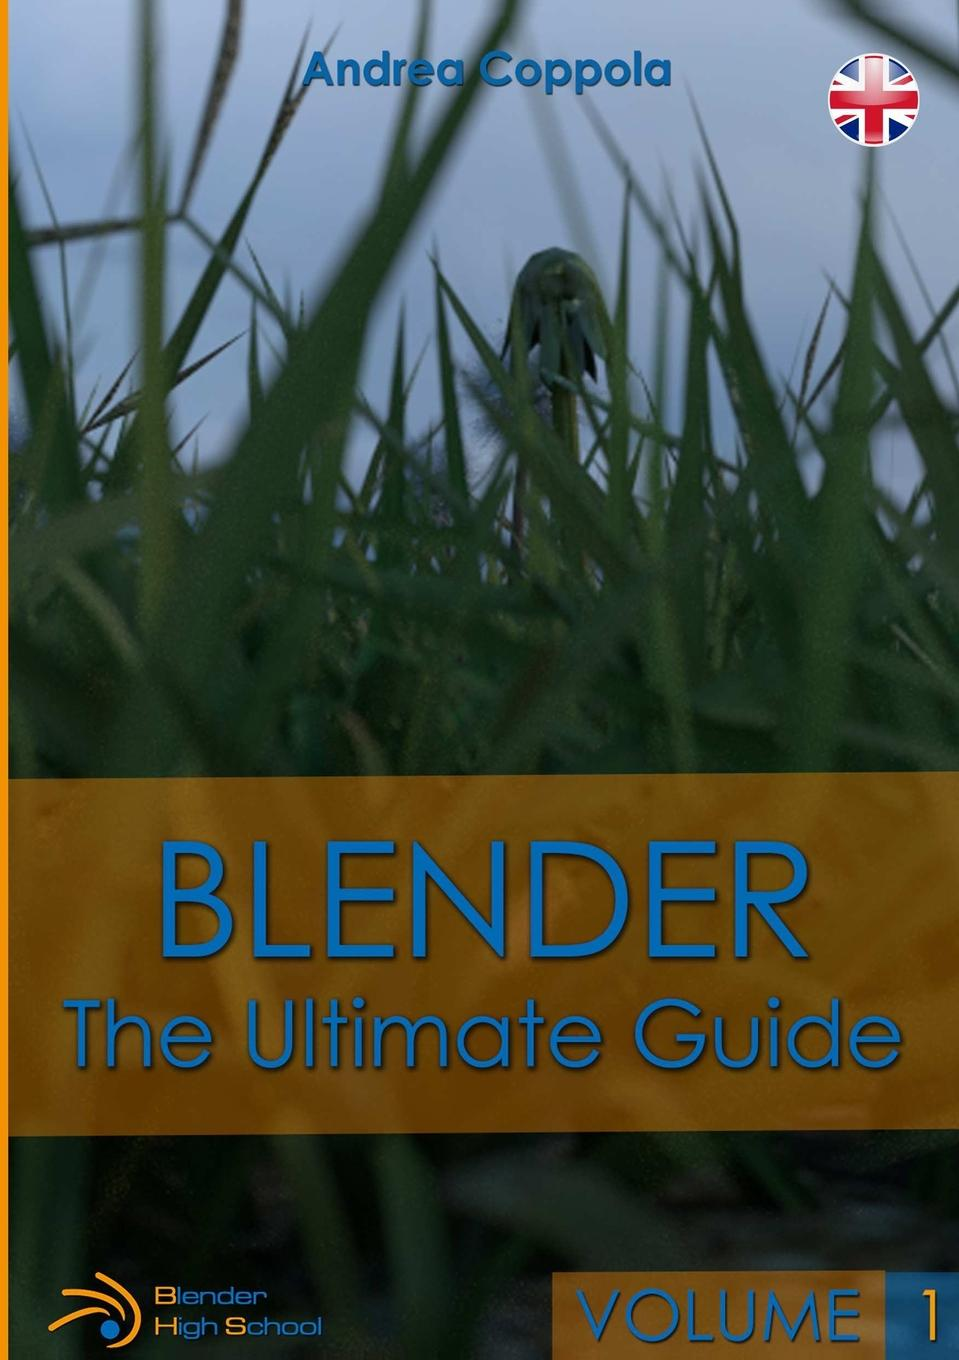 Andrea Coppola BLENDER - THE ULTIMATE GUIDE - VOLUME 1 captain america the ultimate guide to the first avenger